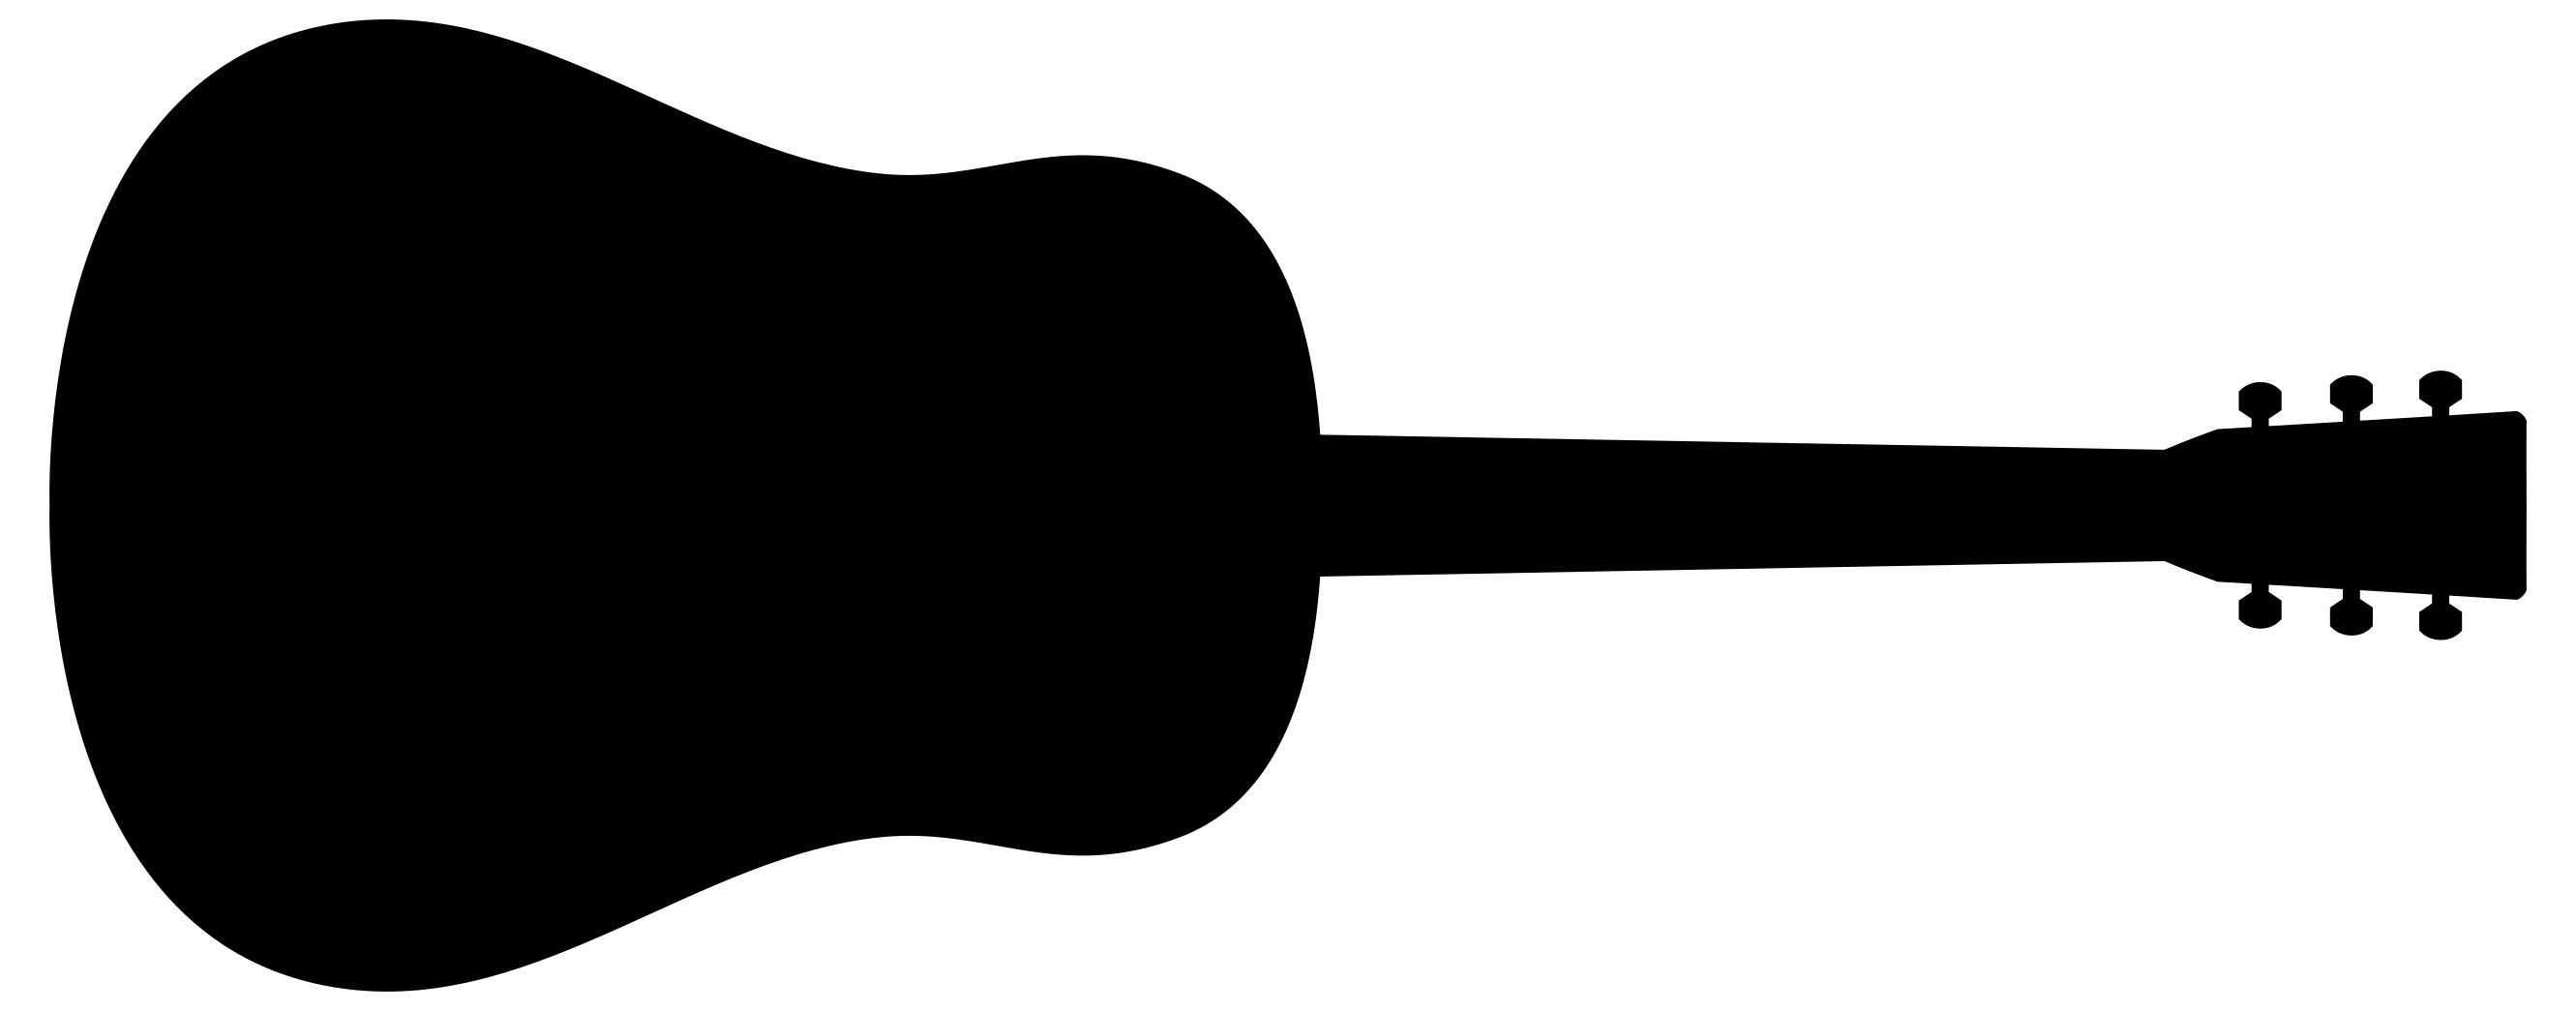 Guitar clipart. Silhouette at getdrawings com